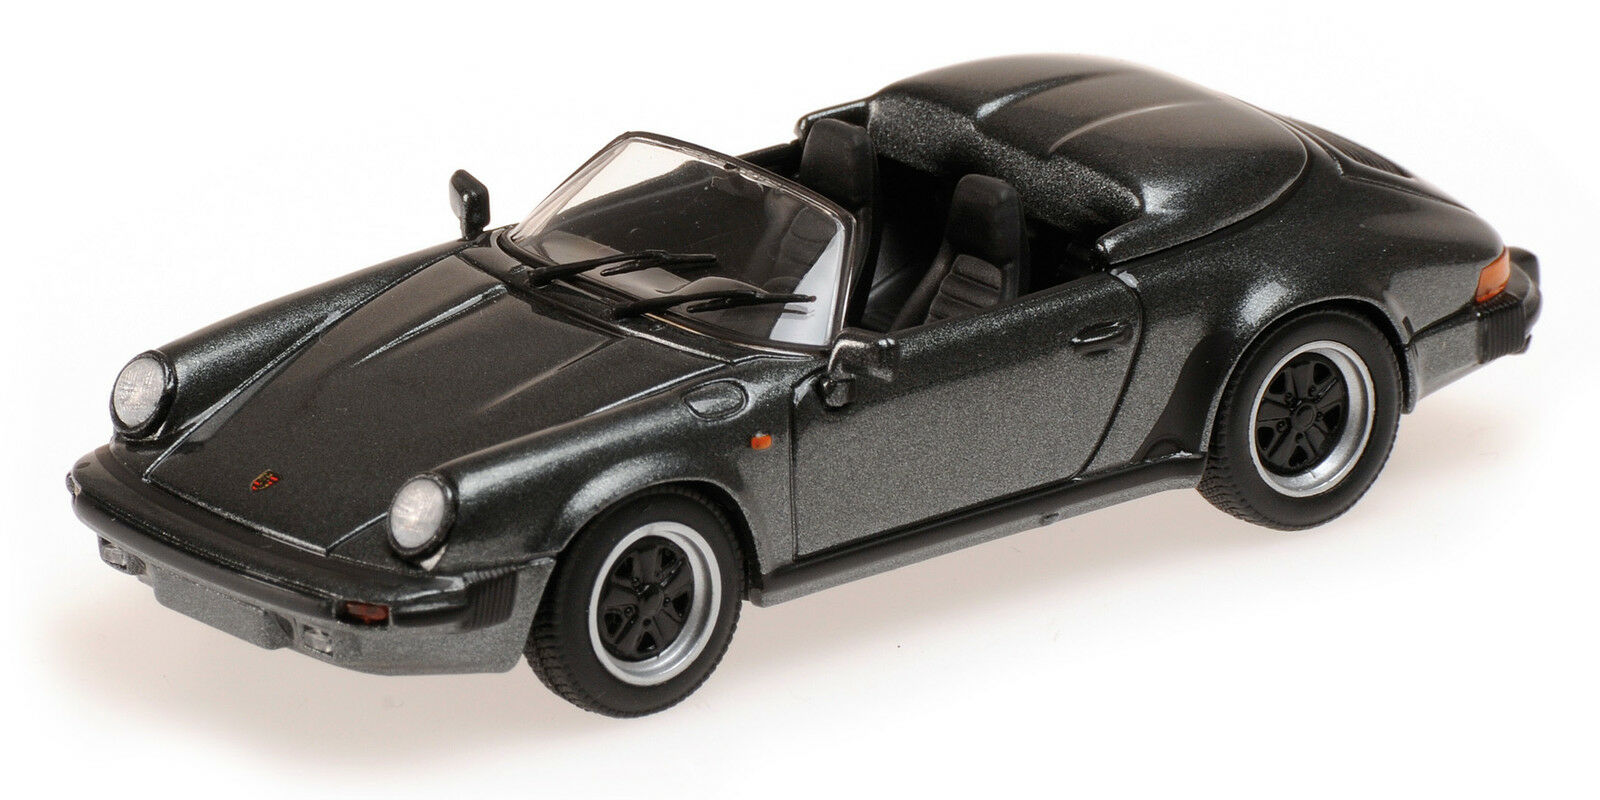 Porsche Speedster 1988 grau Metallic 1 43 Model Model Model 430066135 MINICHAMPS  | Internationale Wahl